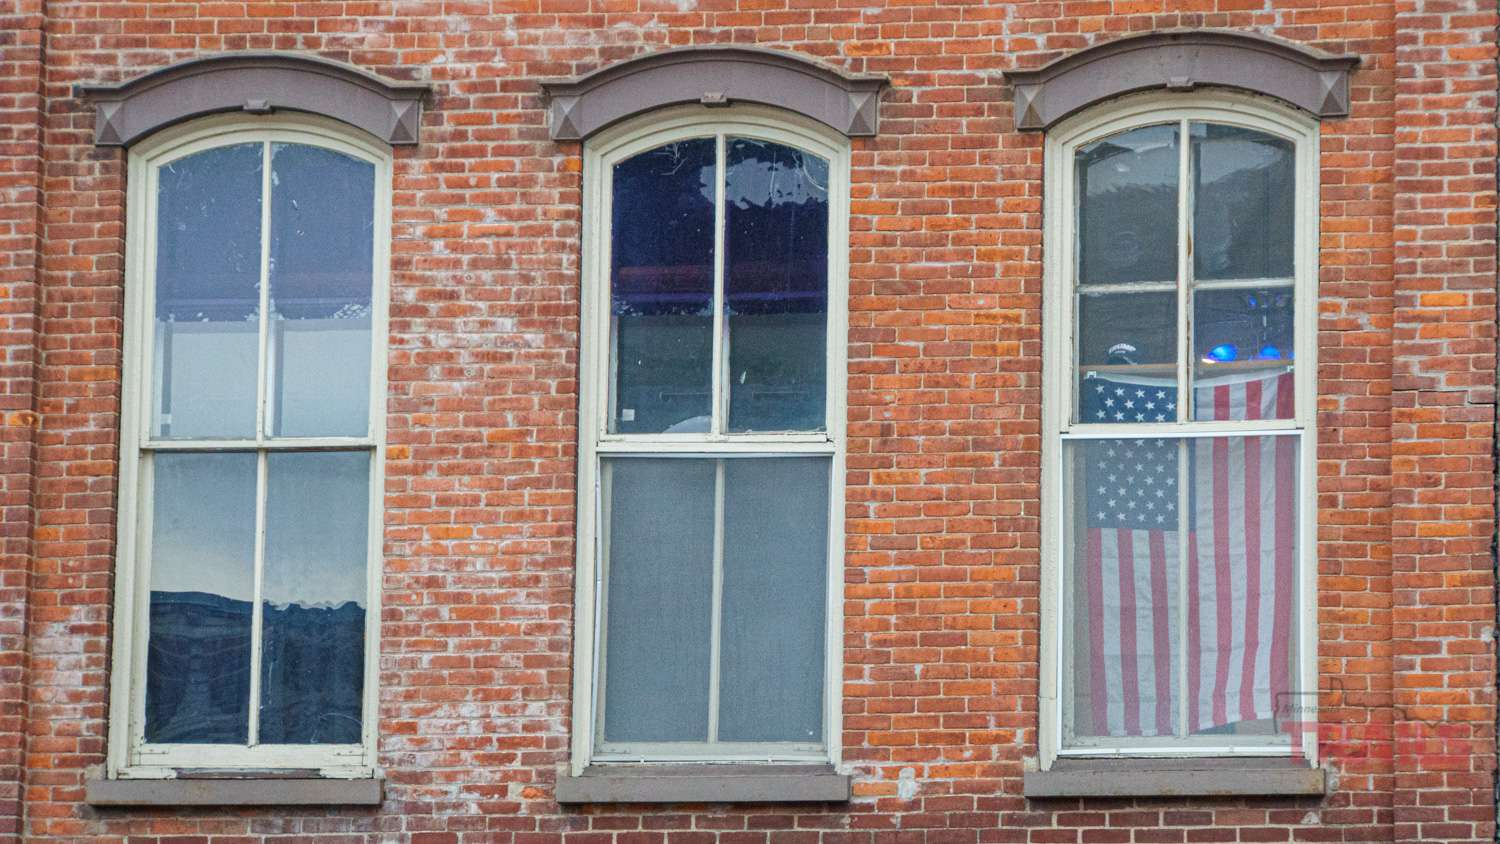 A window in an old brick house displays an American flag